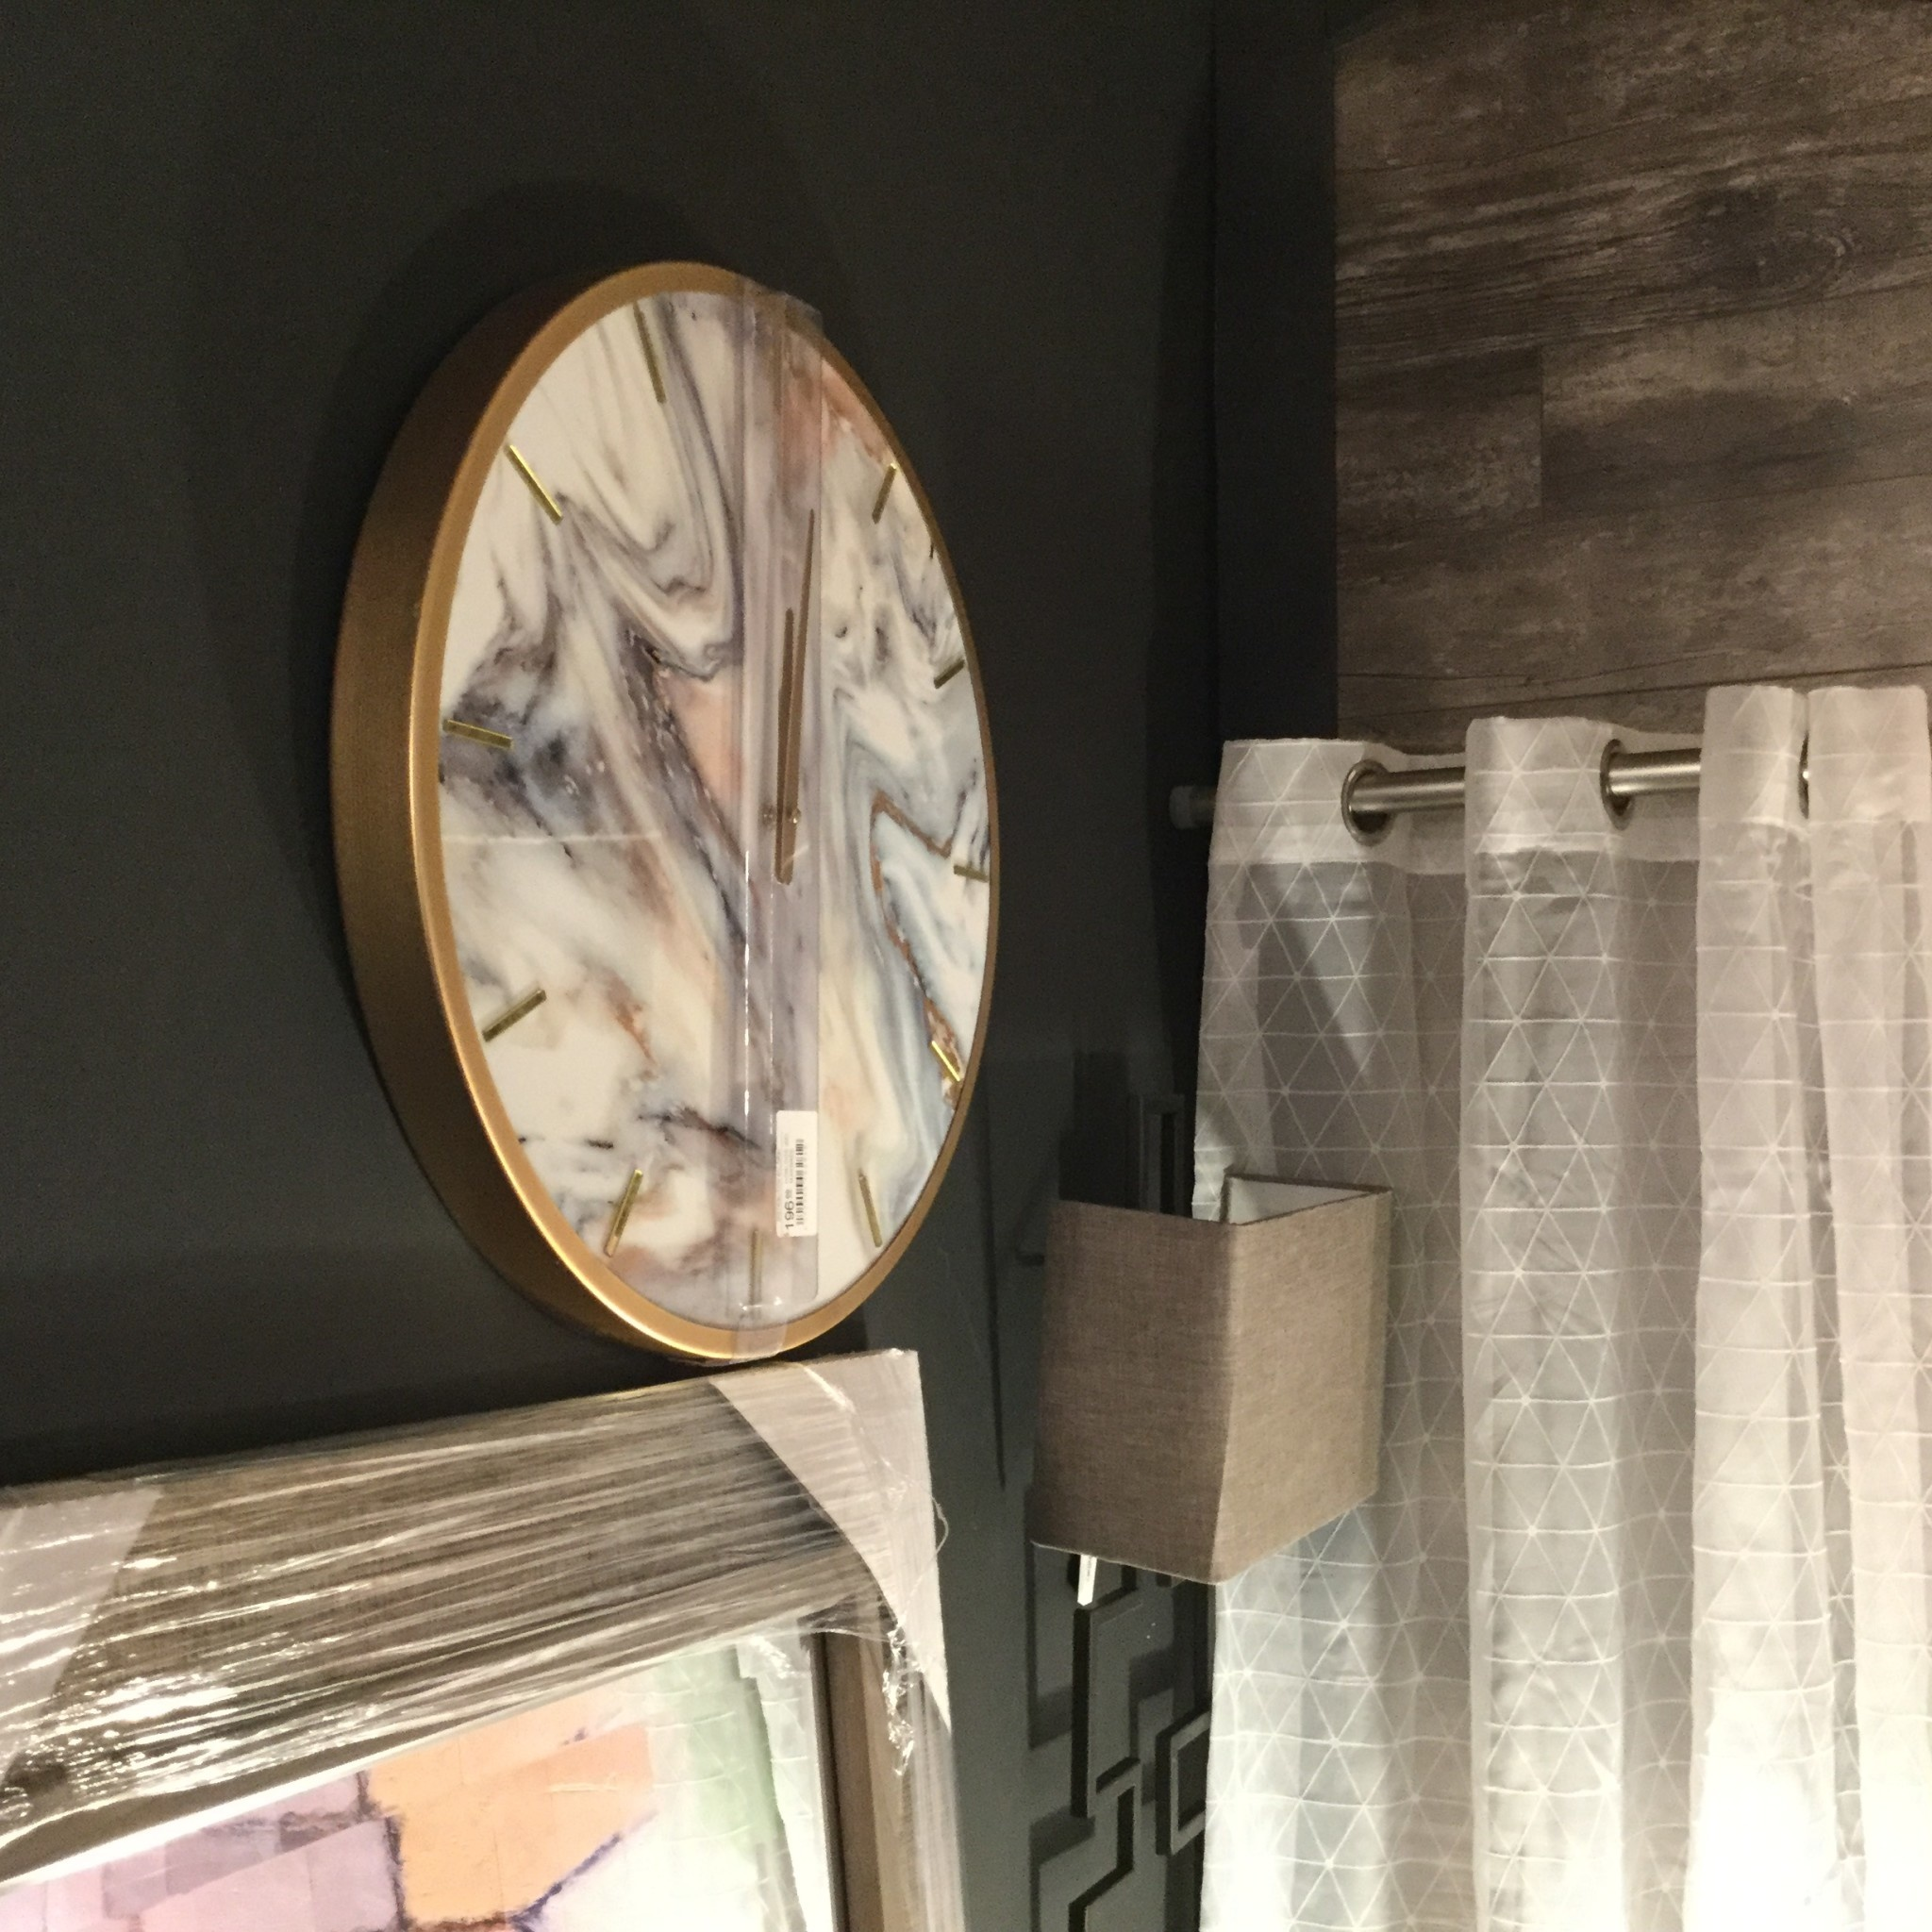 GREY AND GOLD MARBLED CLOCK